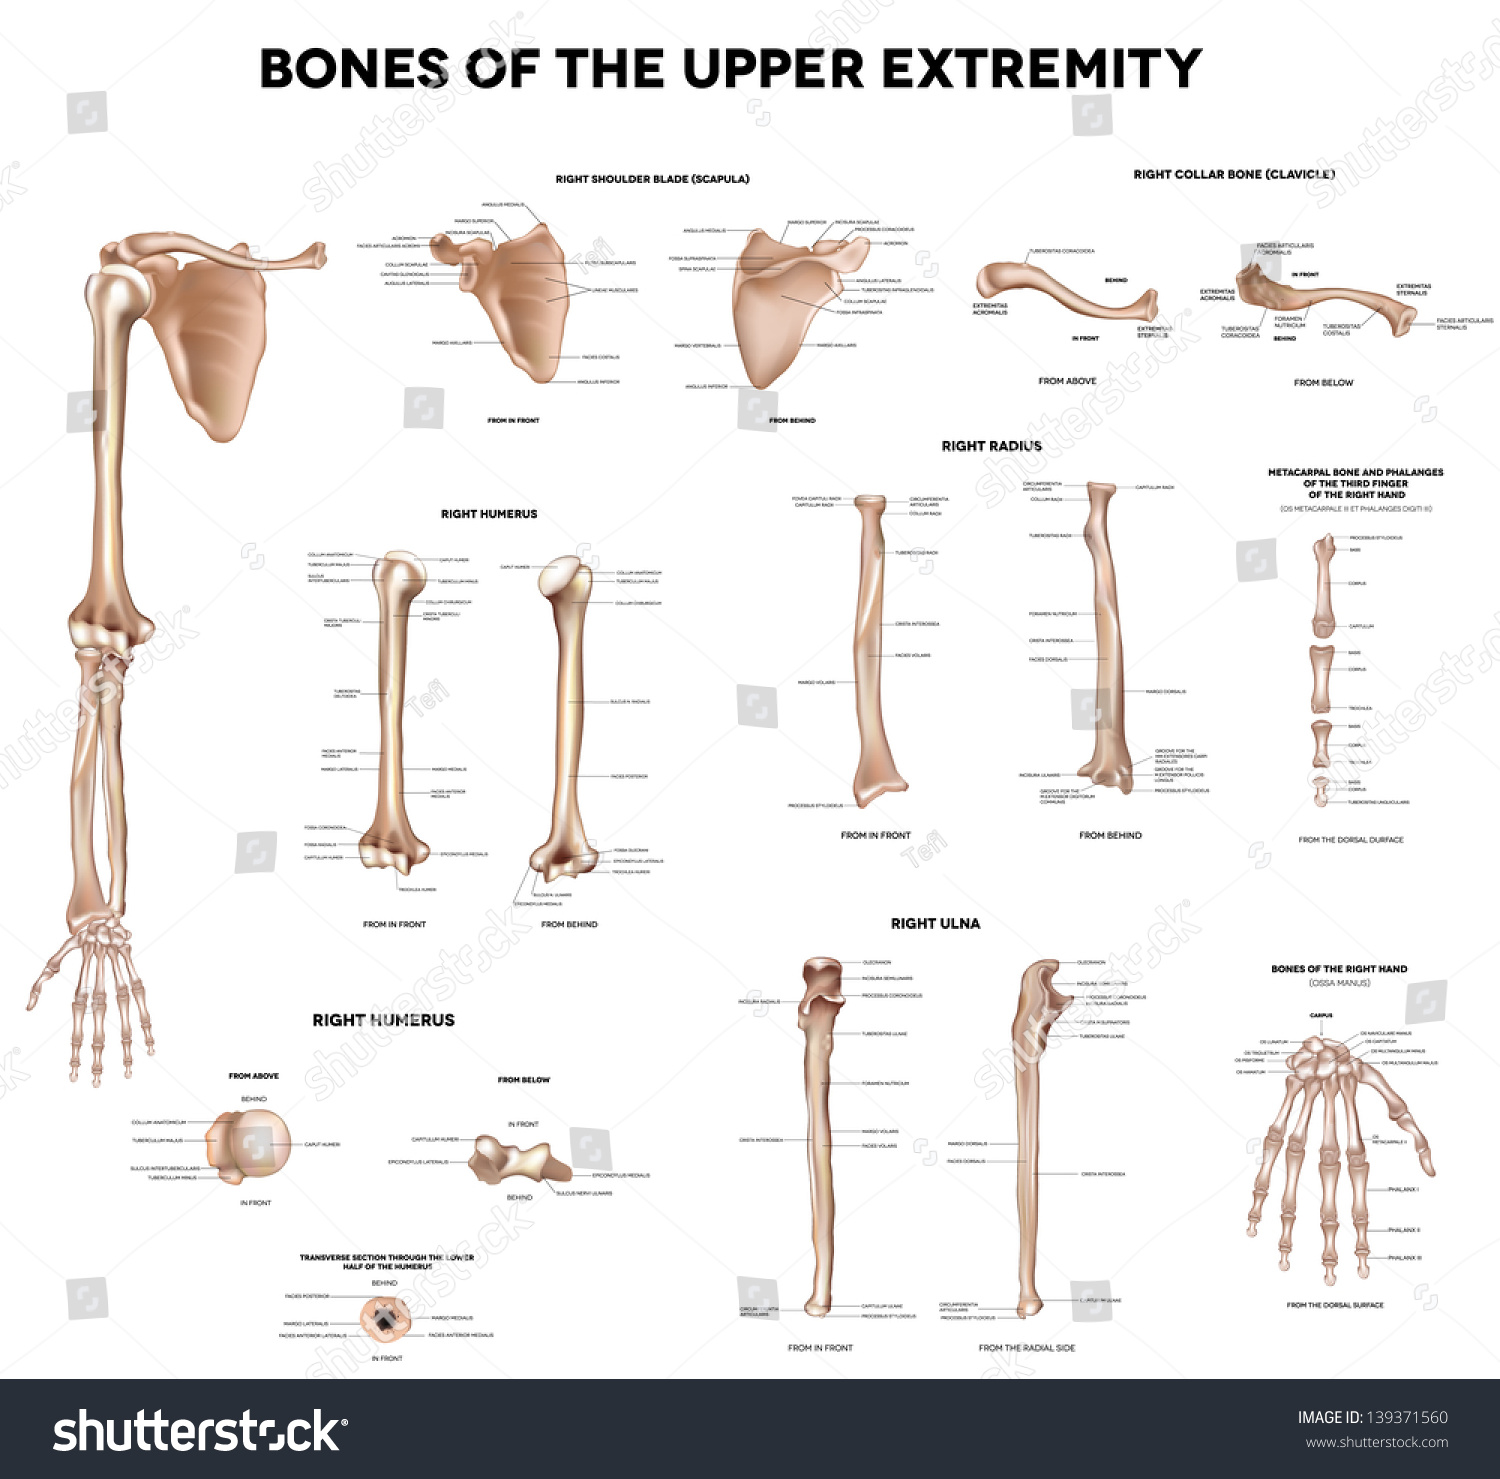 Blank Radius And Ulna Diagram 44344 | IMGFLASH